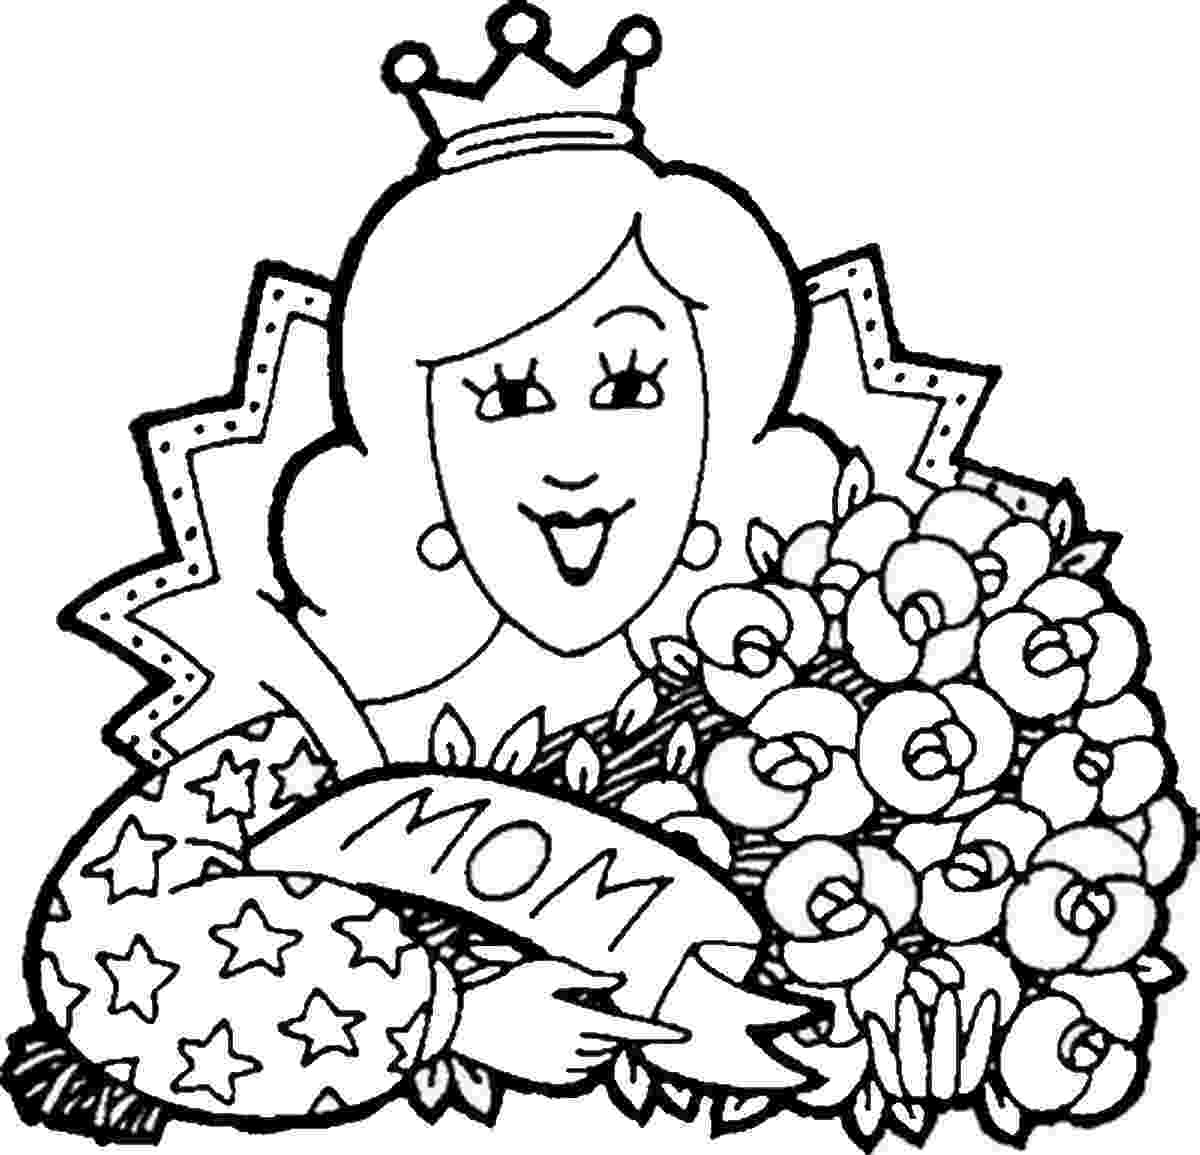 coloring picture for mothers day mother day coloring pages to download and print for free day for picture coloring mothers